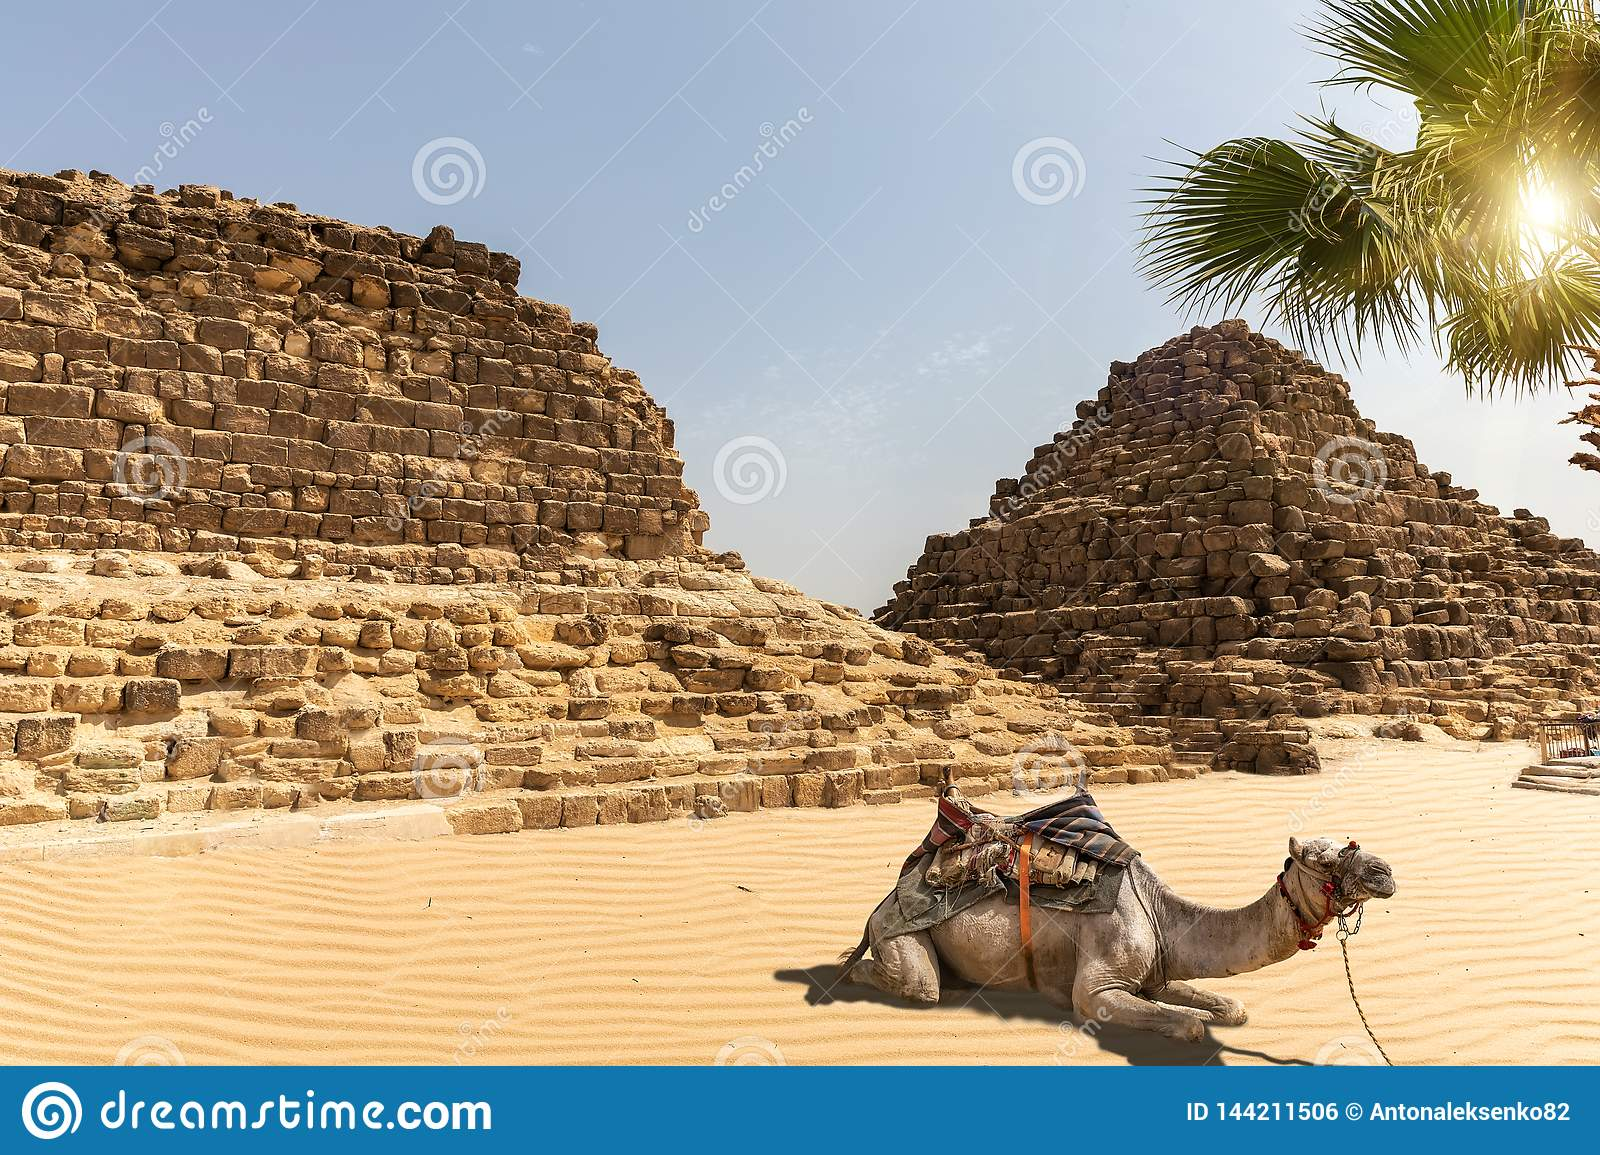 Tombs in Giza and a camel next to them, Egypt